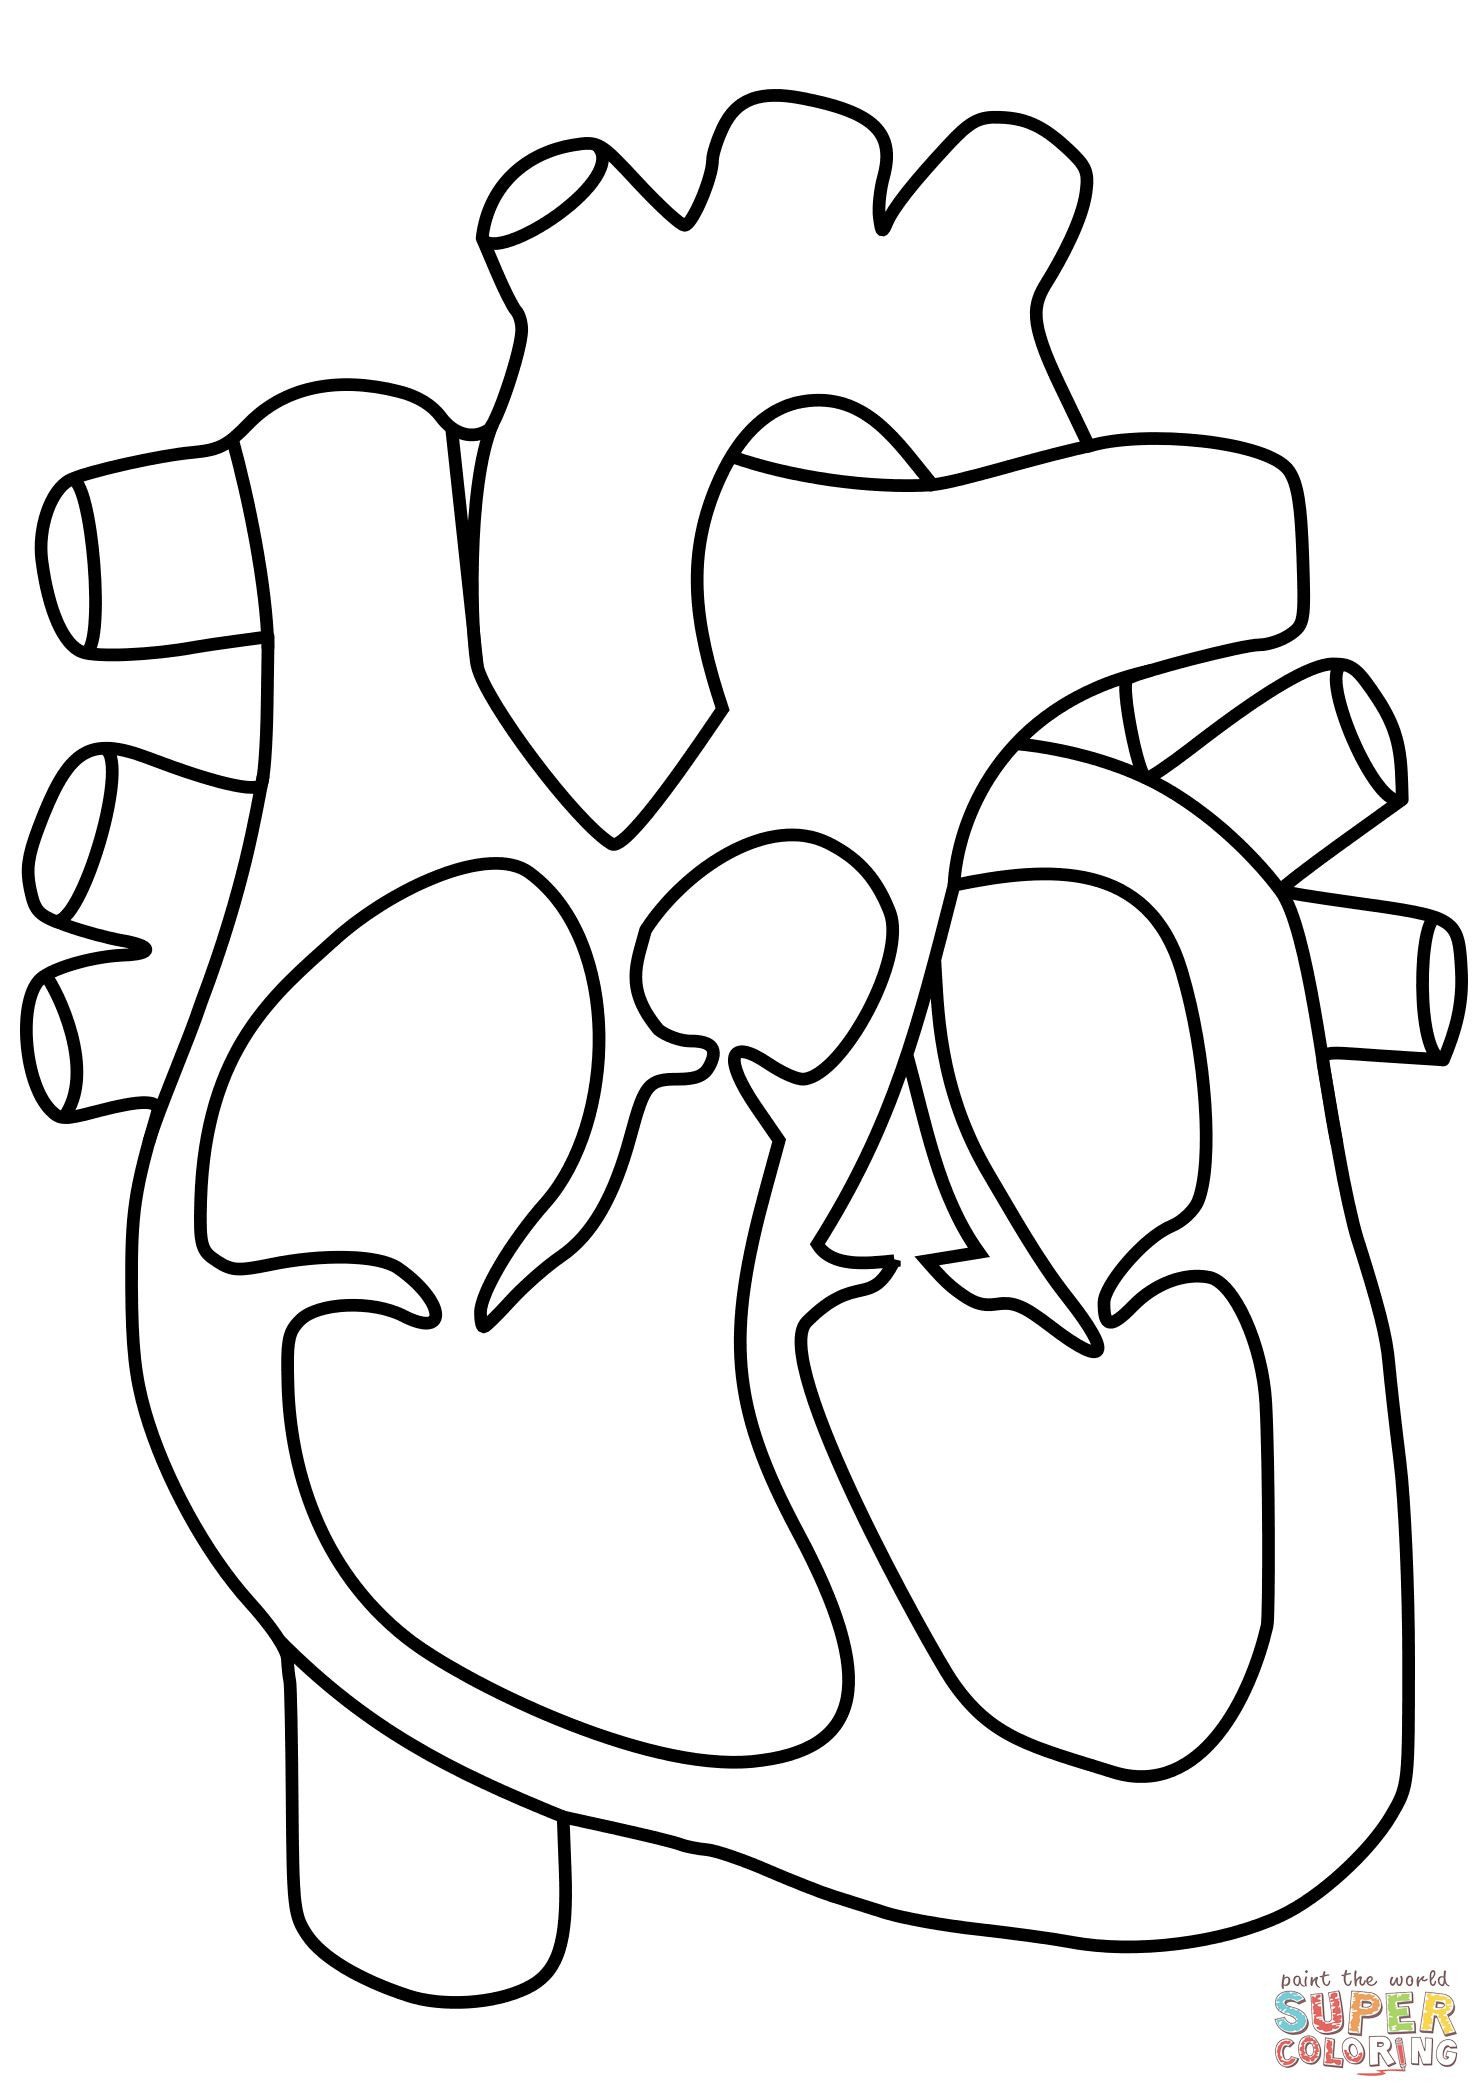 Heart Coloring Worksheet Human Heart Coloring Pages Human Heart Coloring Page Human